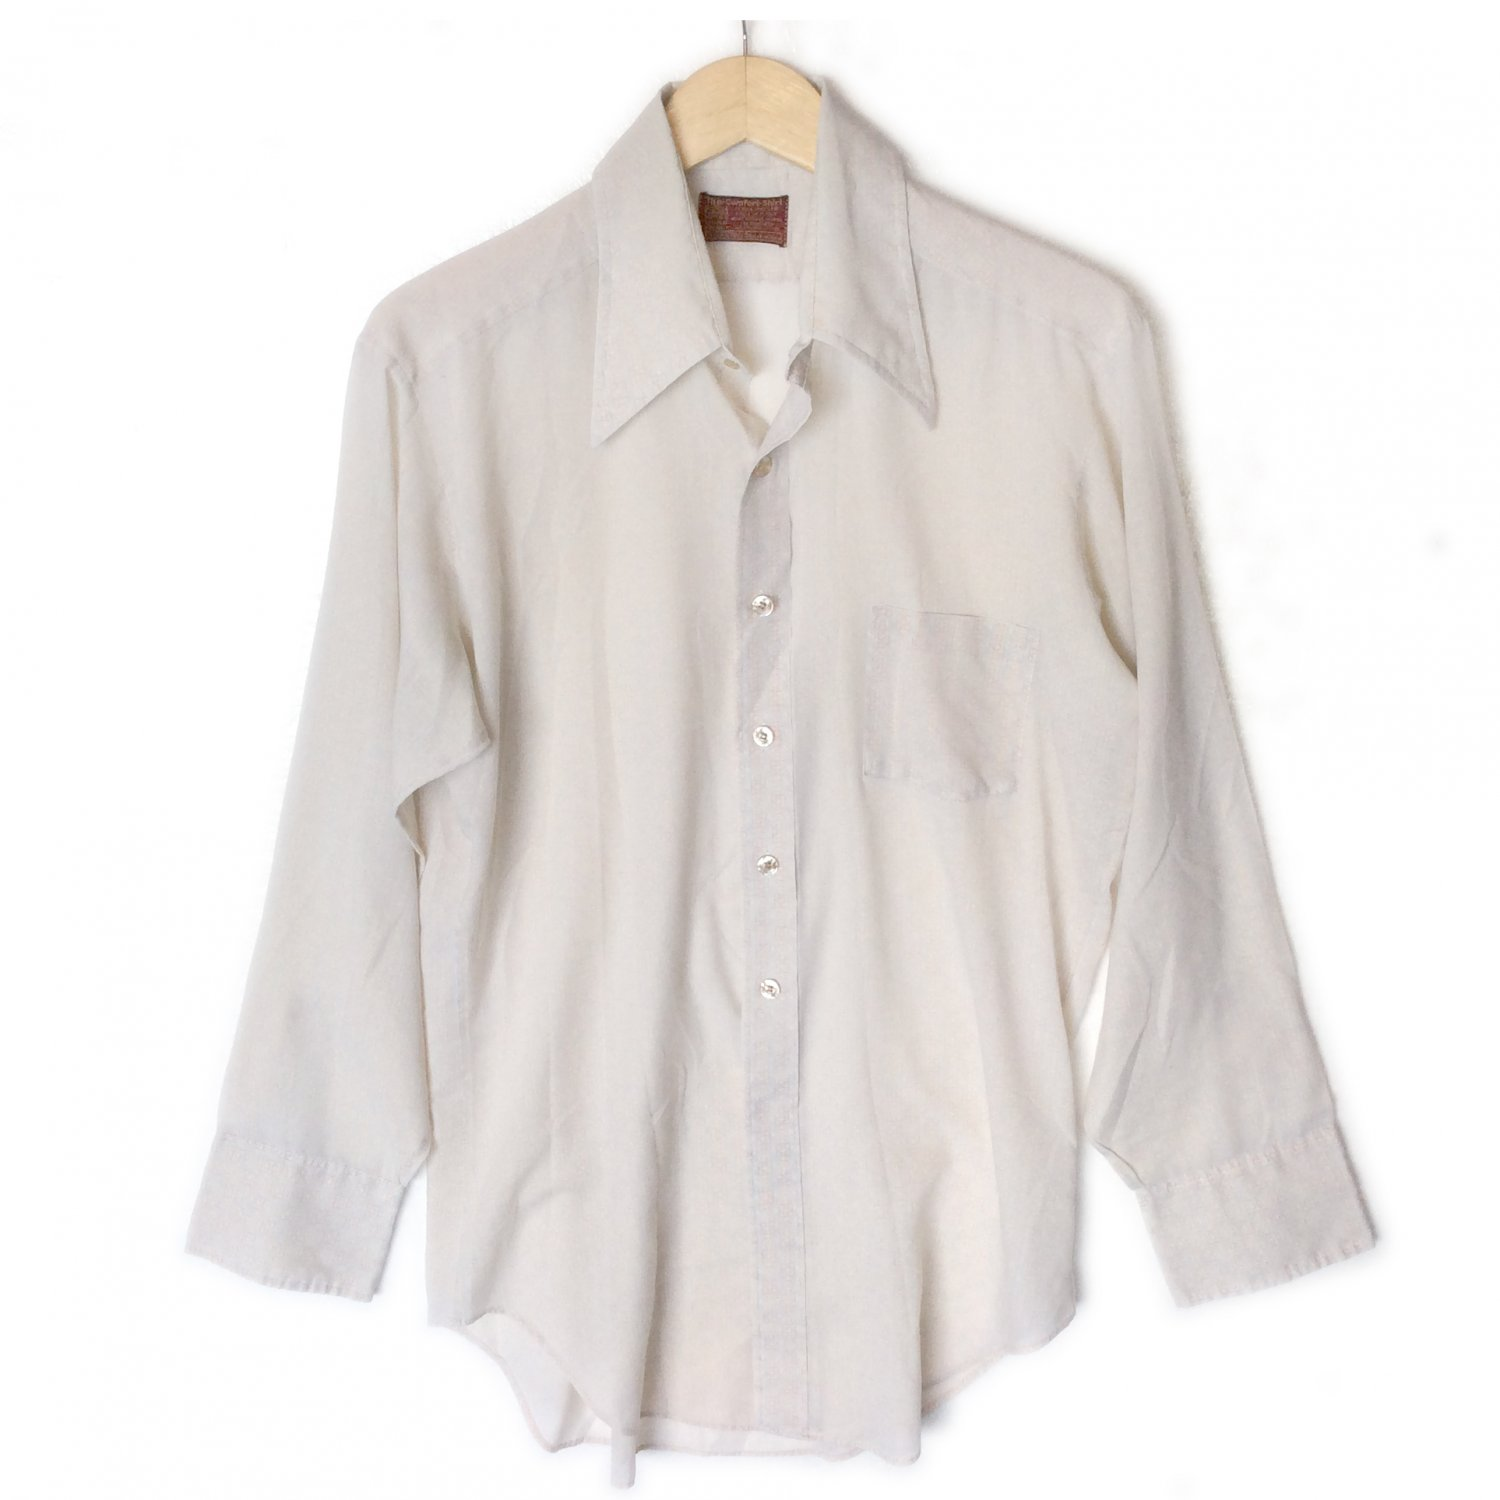 Sears Kings Road Shop Vintage 60s 70s Pointy Collar Thin Shirt 16 35 (XL Slim)